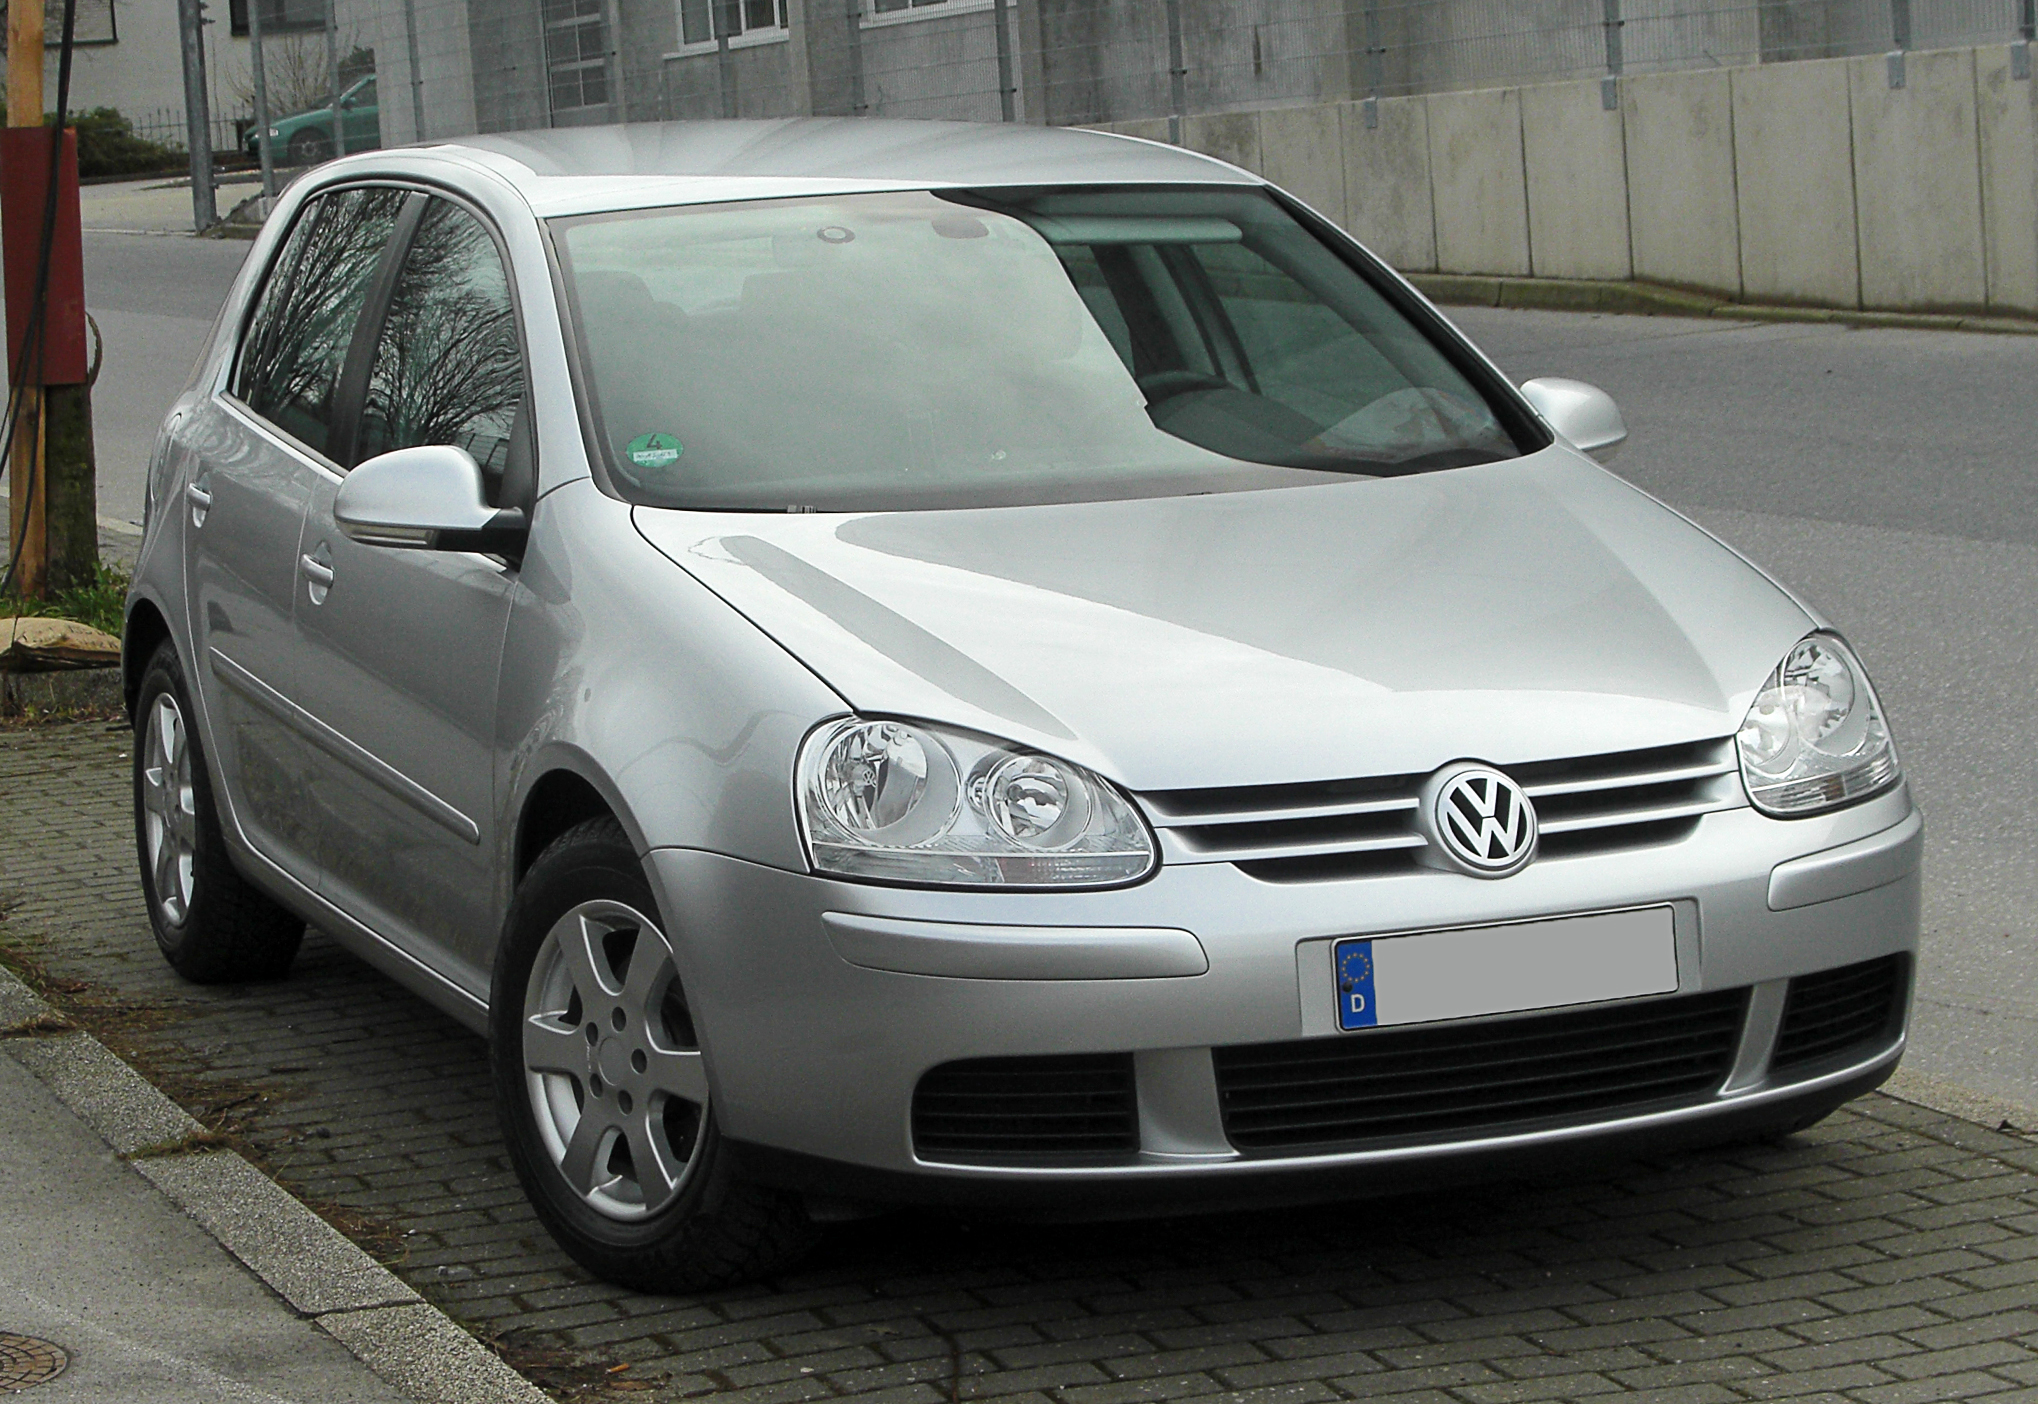 file vw golf tdi v frontansicht 13 februar 2011 w wikimedia commons. Black Bedroom Furniture Sets. Home Design Ideas